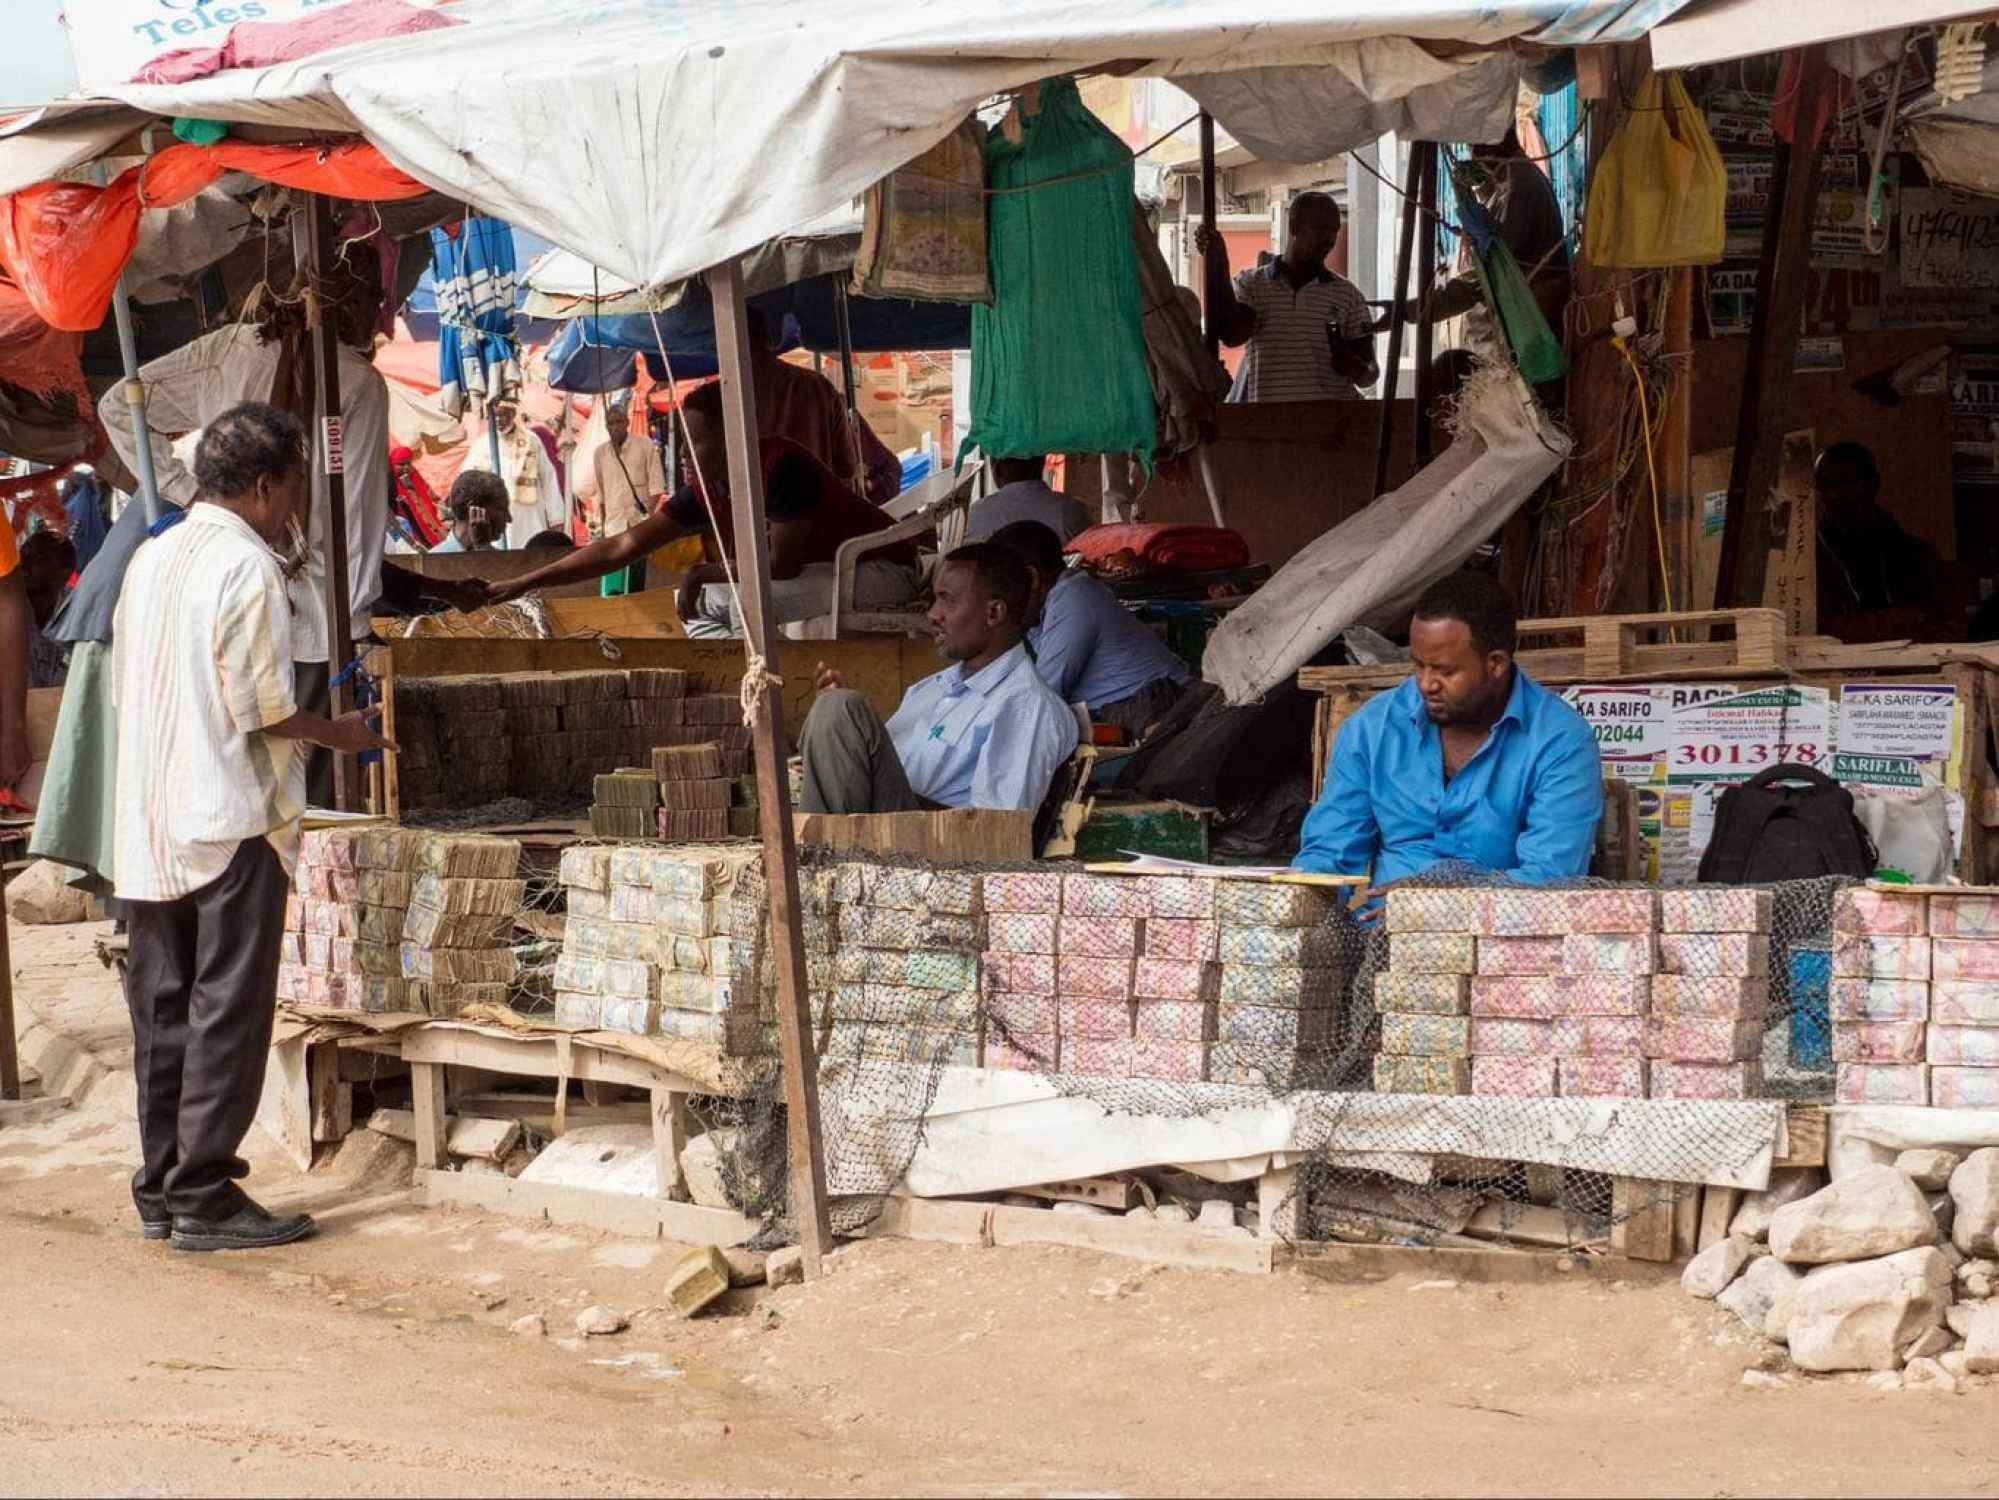 Money changers in Hargeisa